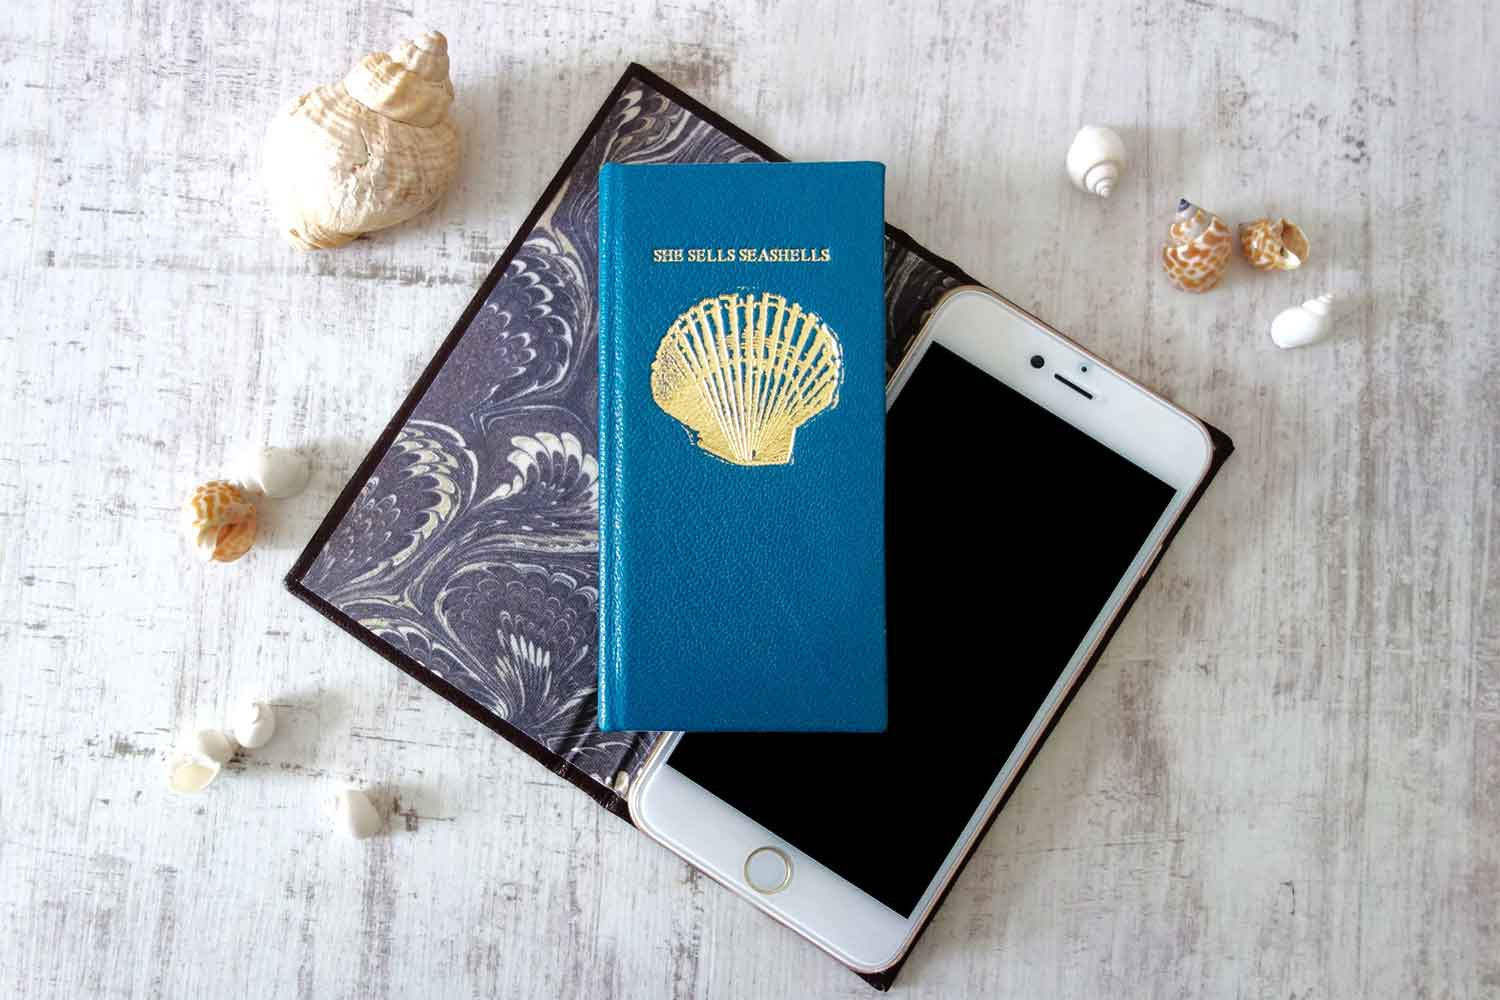 Luxury leather phone cases in blue leather with a shell on the cover from Bookshell